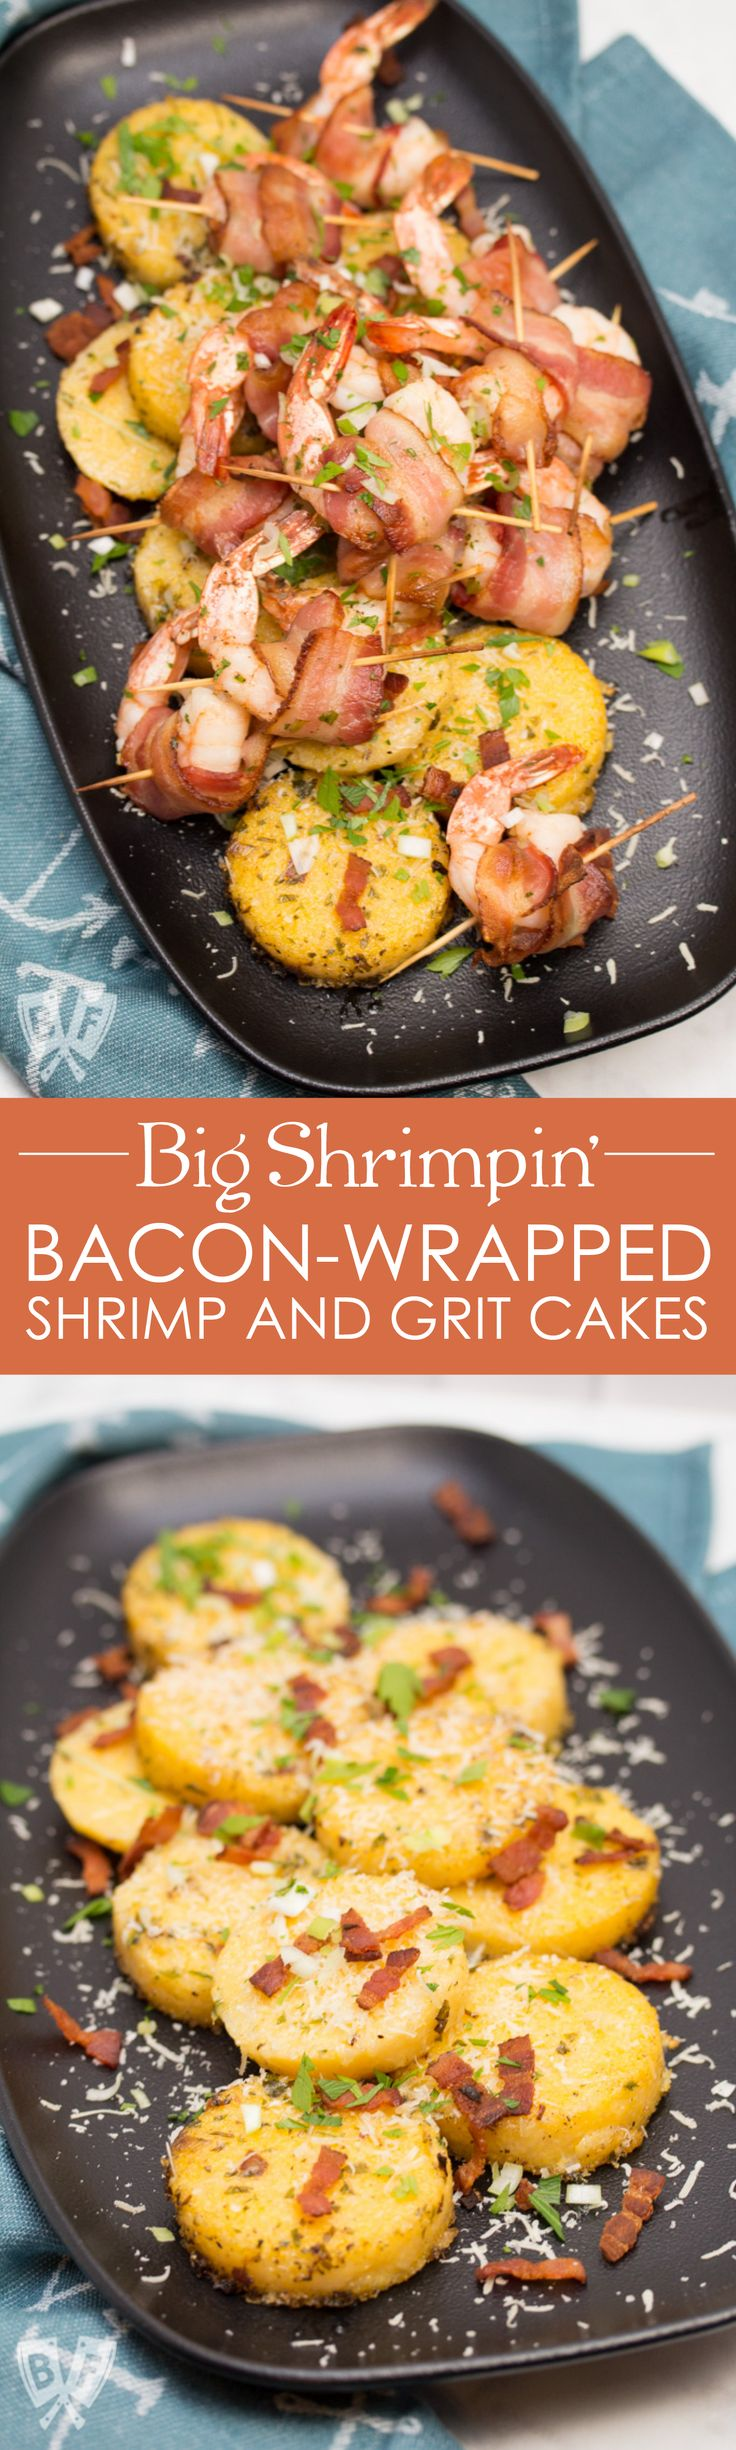 Big Shrimpin' Bacon-Wrapped Shrimp and Grit Cakes: Classic shrimp and grits gets an upscale makeover in this over-the-top, bacon-wrapped presentation. Easy, delicious, and sure to impress your dinner guests! #BaconMonth